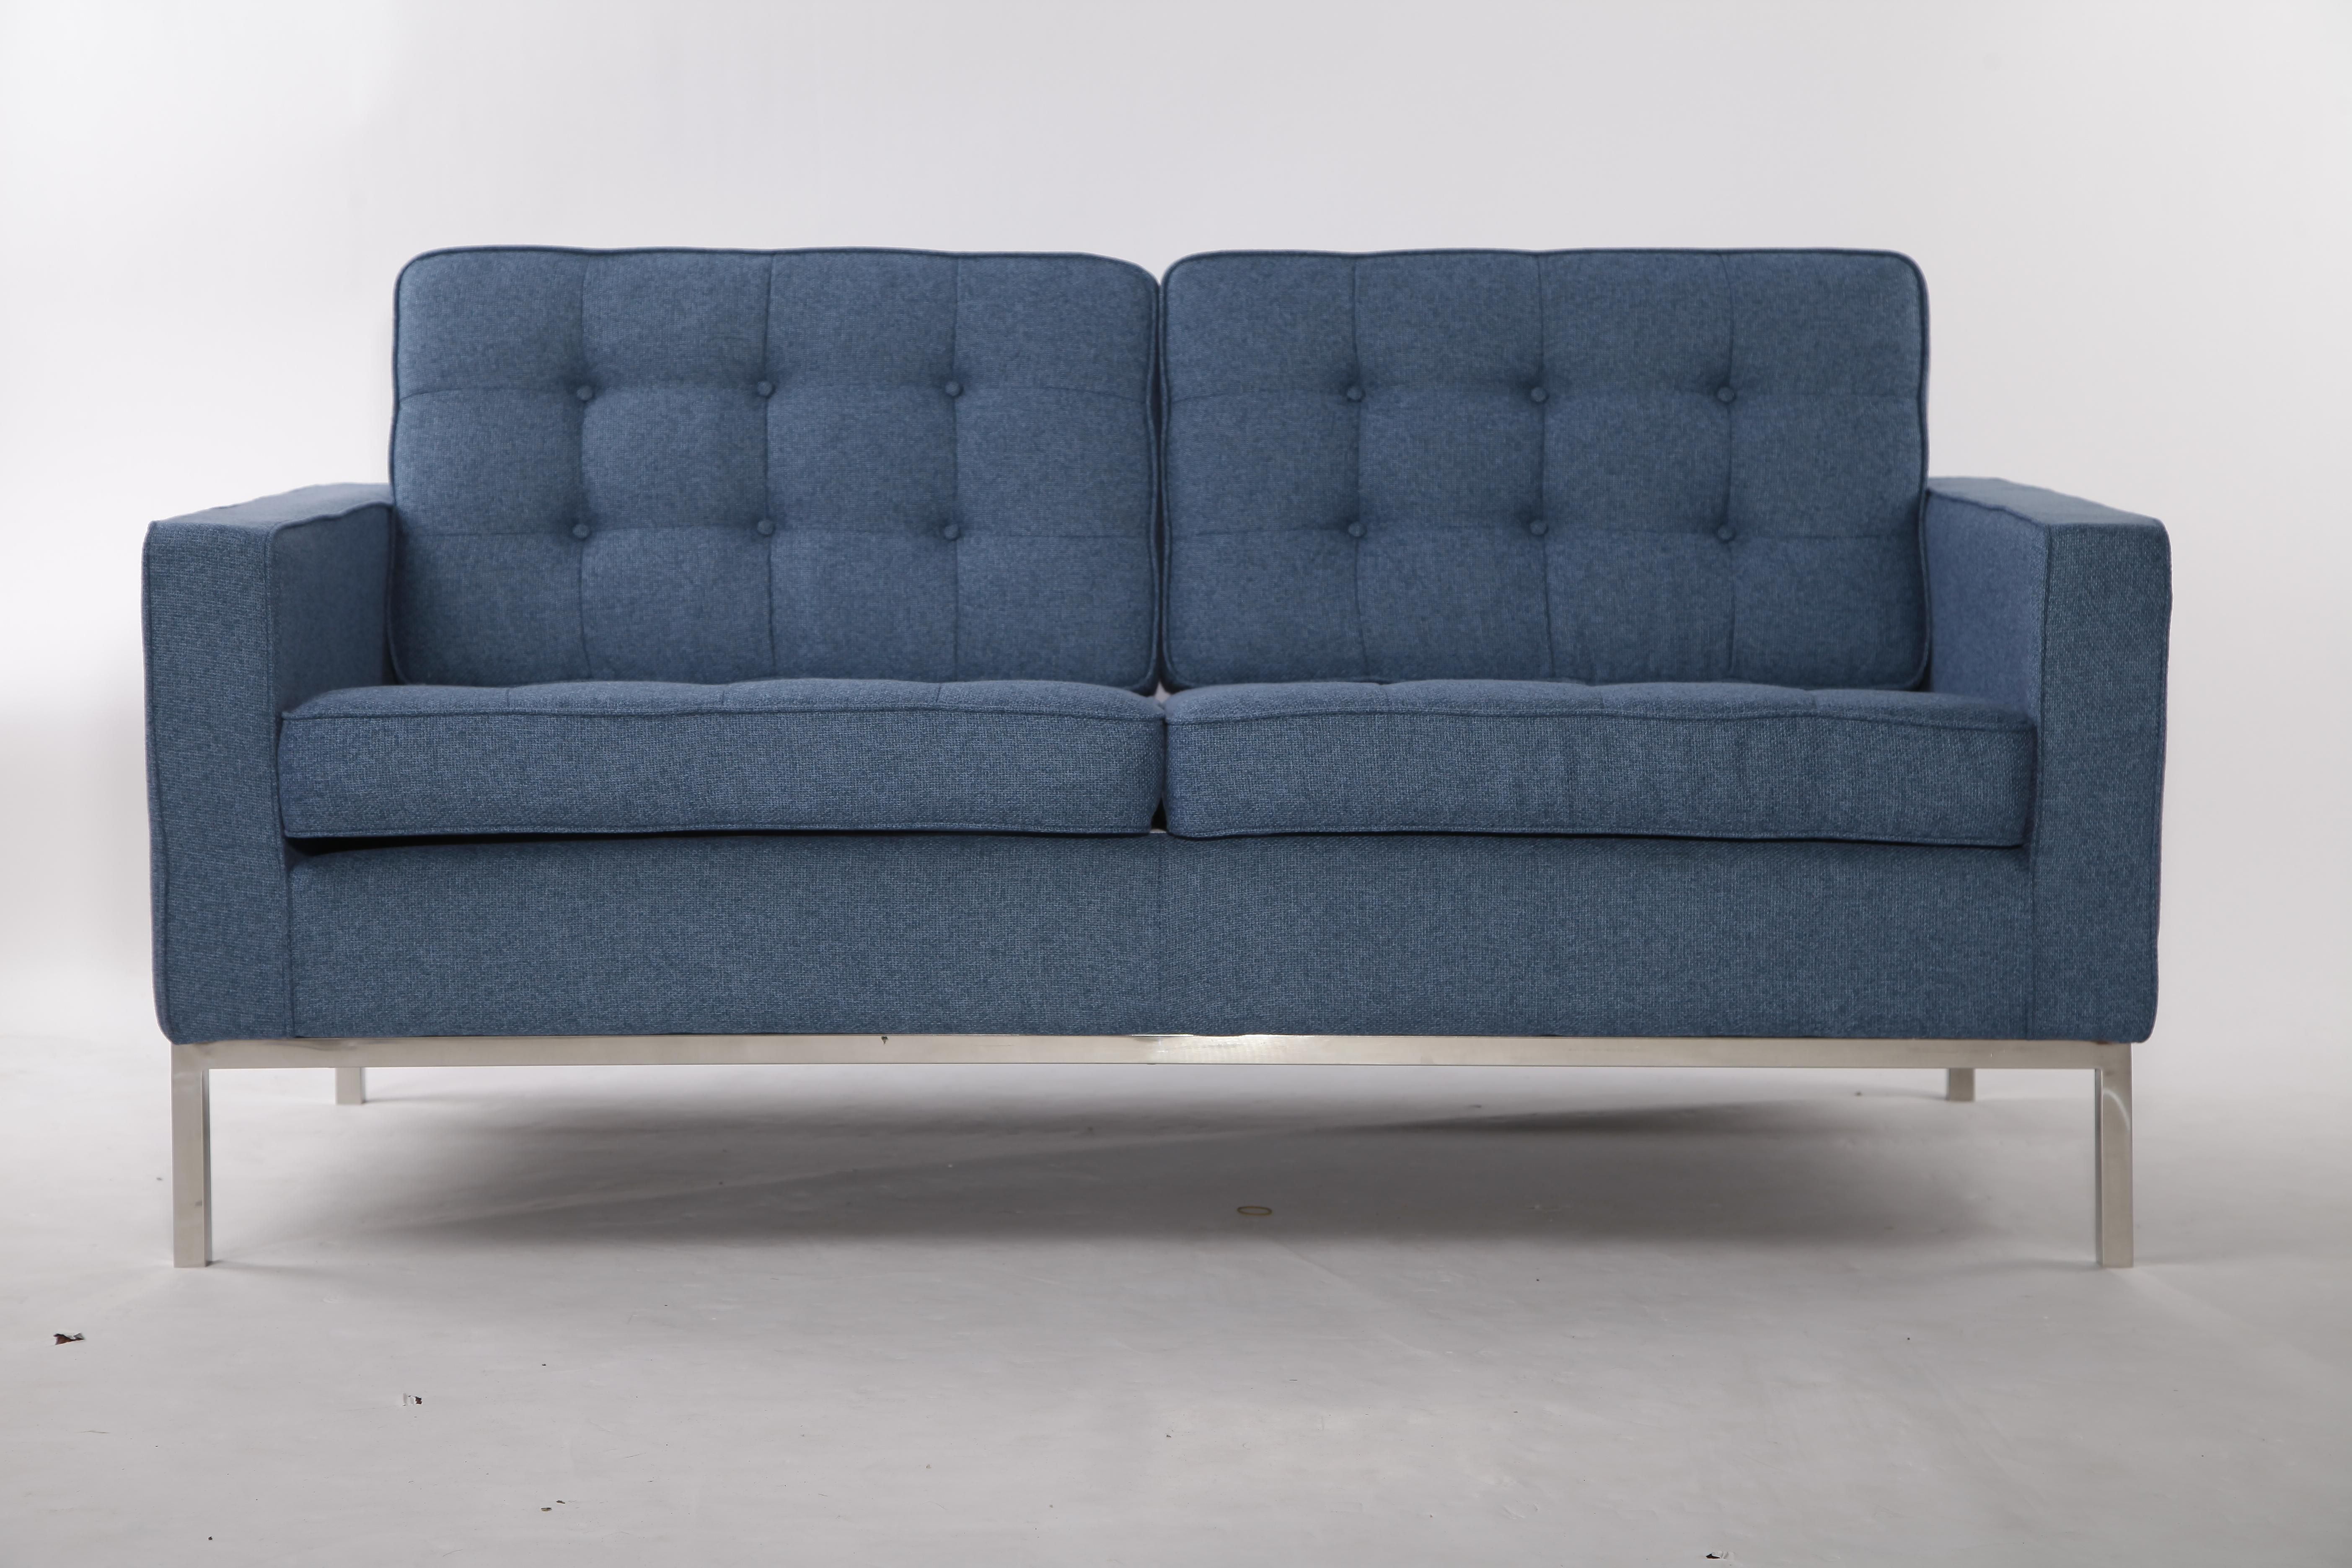 Florence Knoll Sofa Replica 2 Seater In Blue Tweed